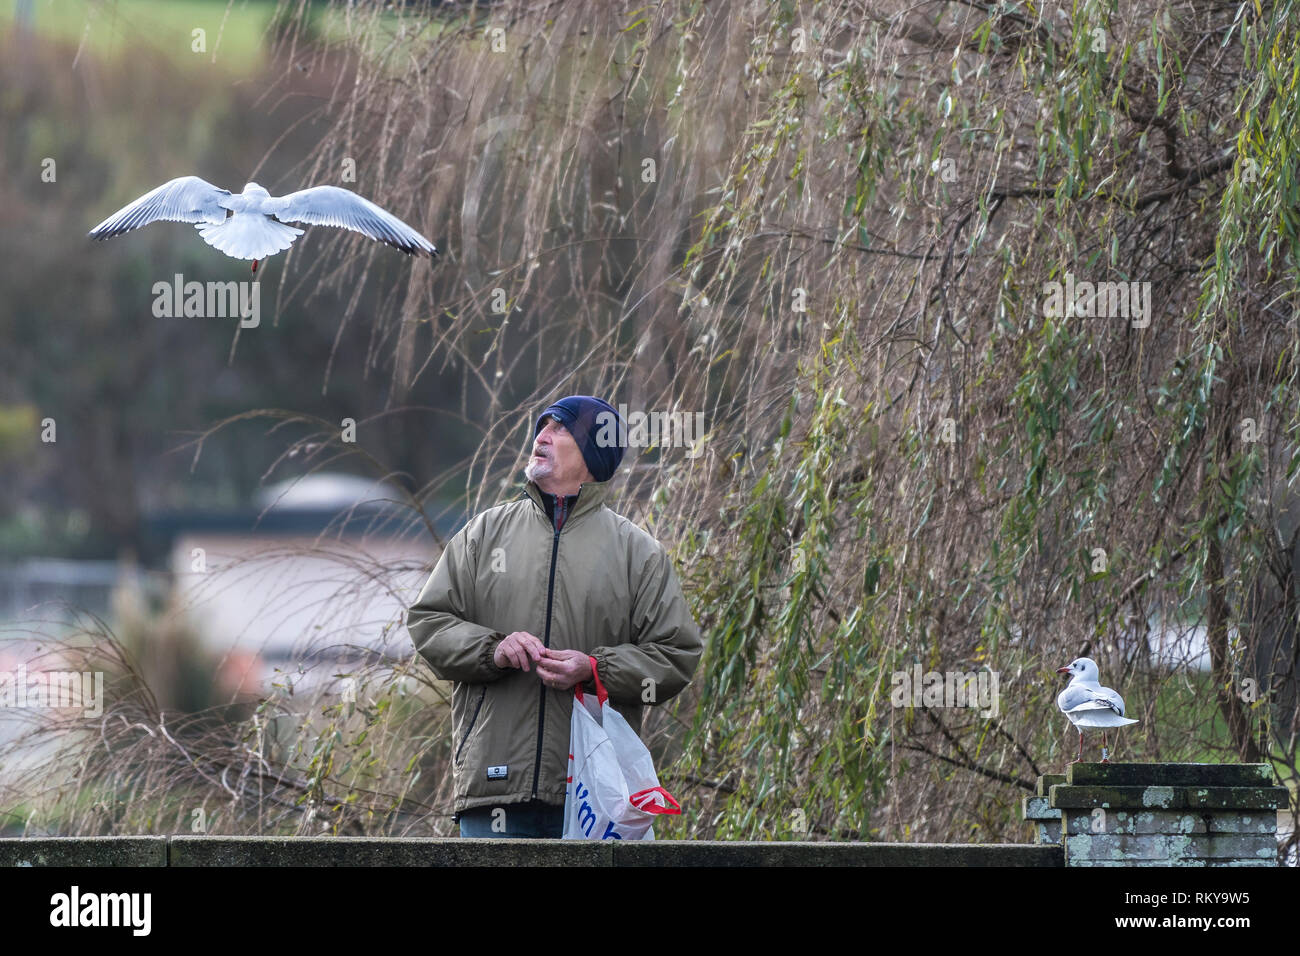 A man feeding Black Headed gulls in winter plumage in Trenance Gardens in Newquay in Cornwall. - Stock Image